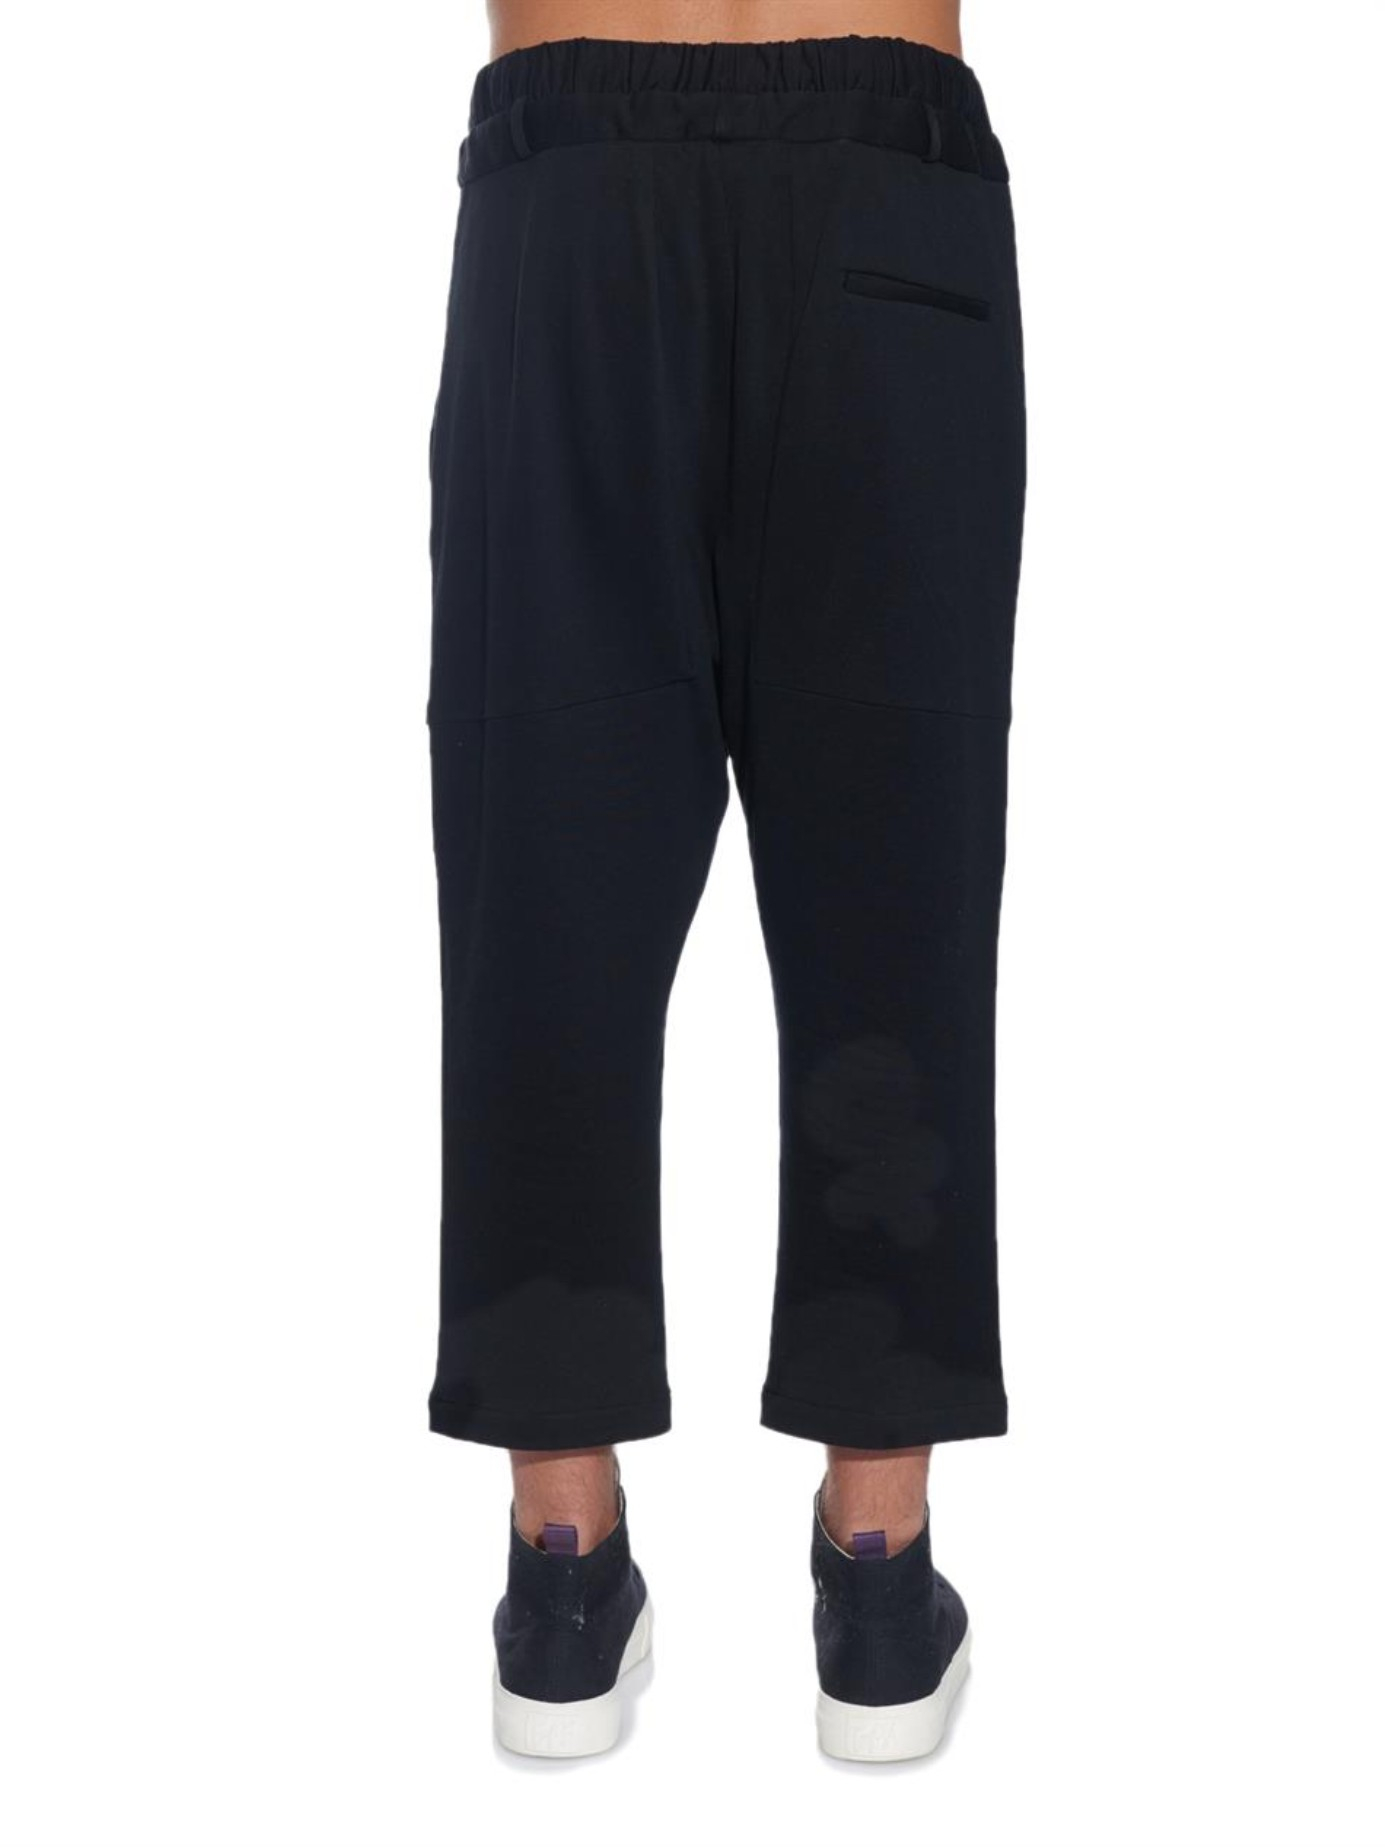 % Pure Organic Cotton School trousers and shorts for boys From skinny fits to classic cuts our smart and fashionable trousers & shorts with the improved fit and fabric will make your boy look cool and feel comfortable. The garment is made from durable % Pure Organic Cotton that is better for child's skin and for the environment.